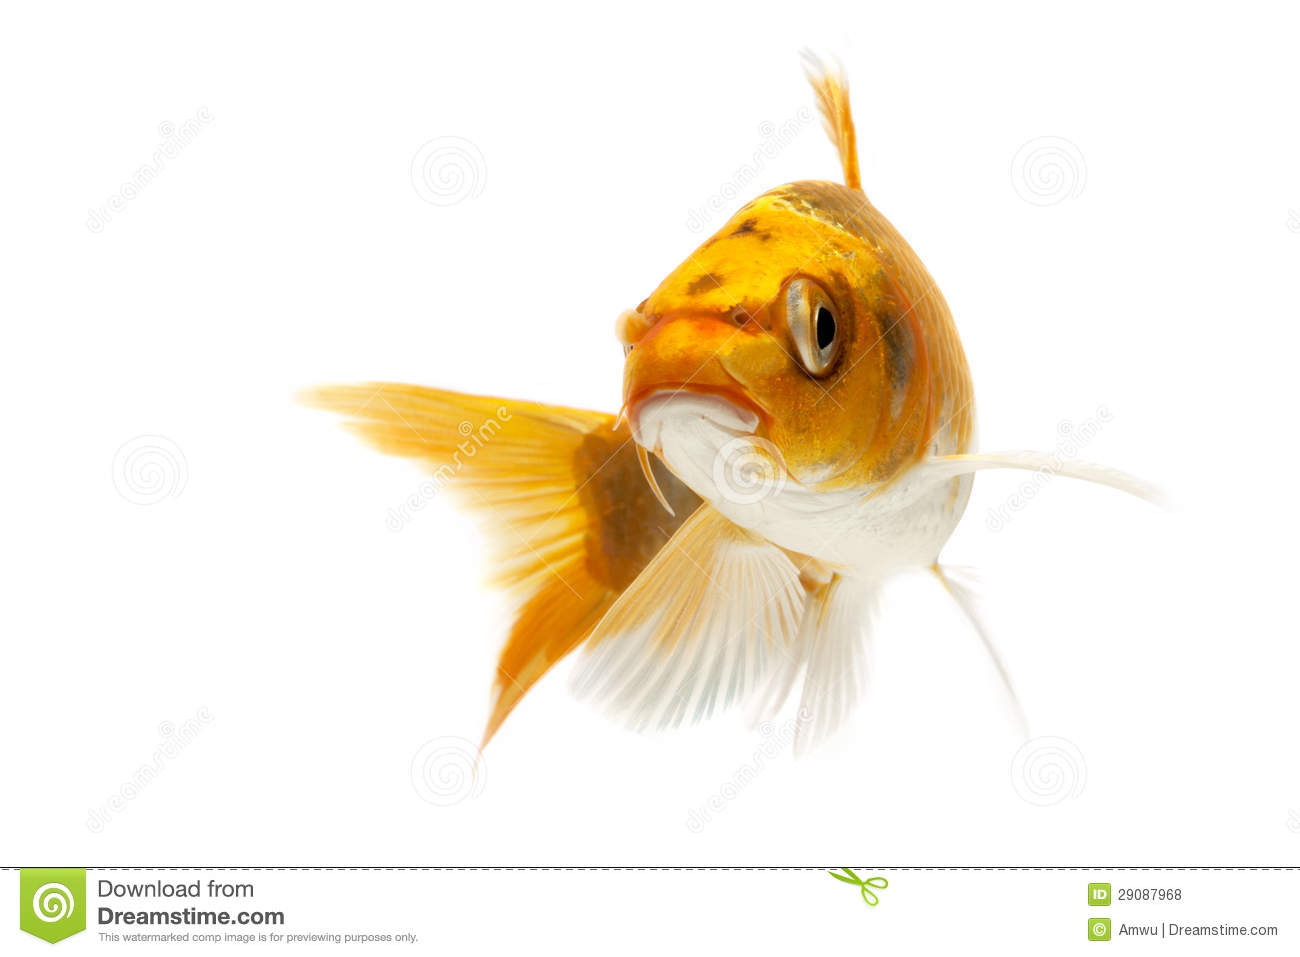 Golden koi fish royalty free stock photos image 29087968 for Coy poisson